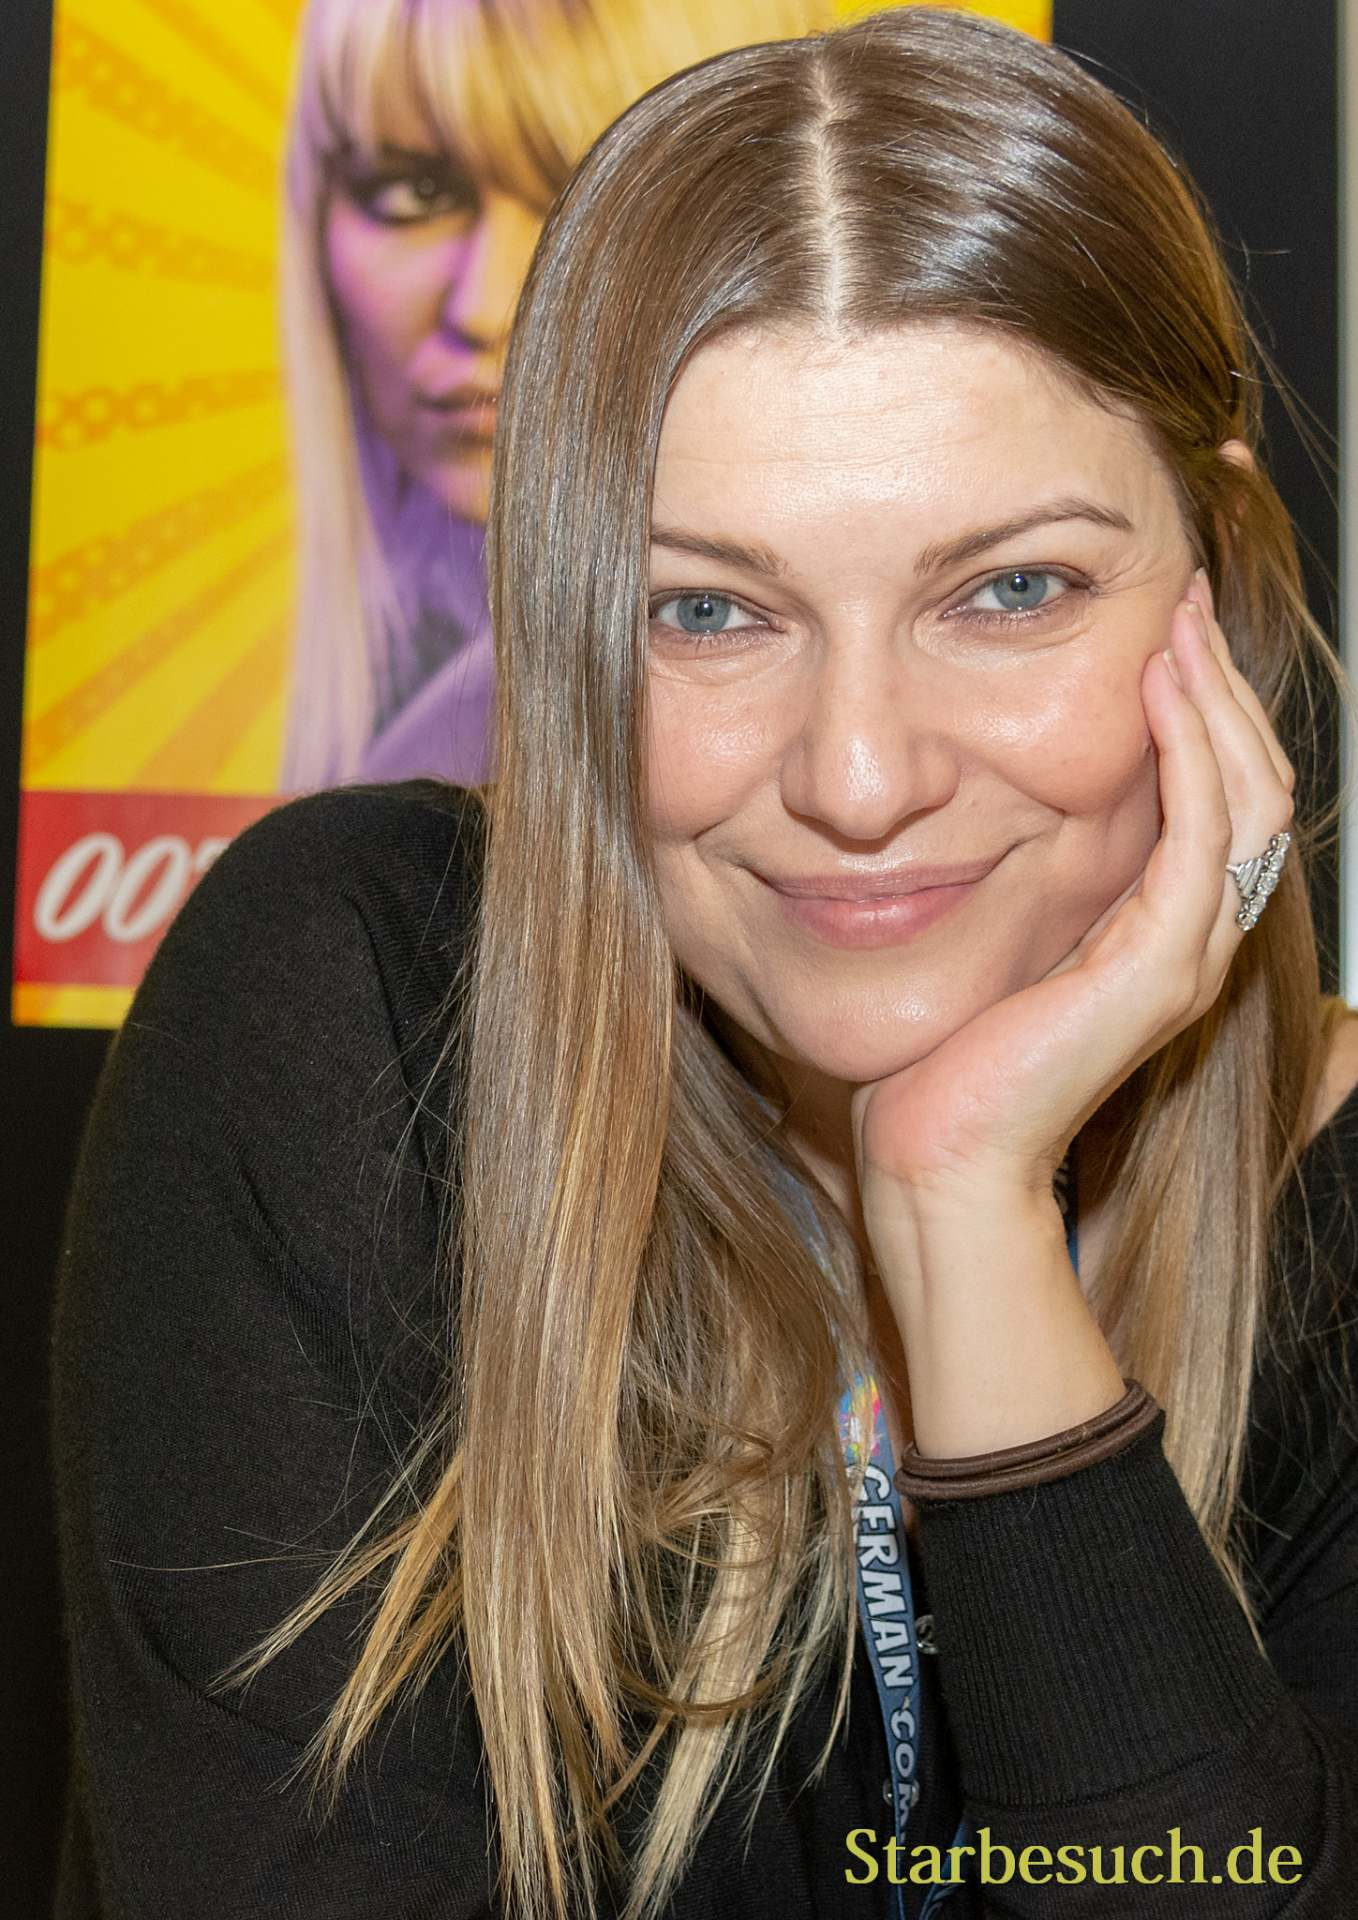 DORTMUND, GERMANY - December 1st 2018: Ivana Milicevic (*1974, Bosnian-American actress) at German Comic Con Dortmund, a two day fan convention